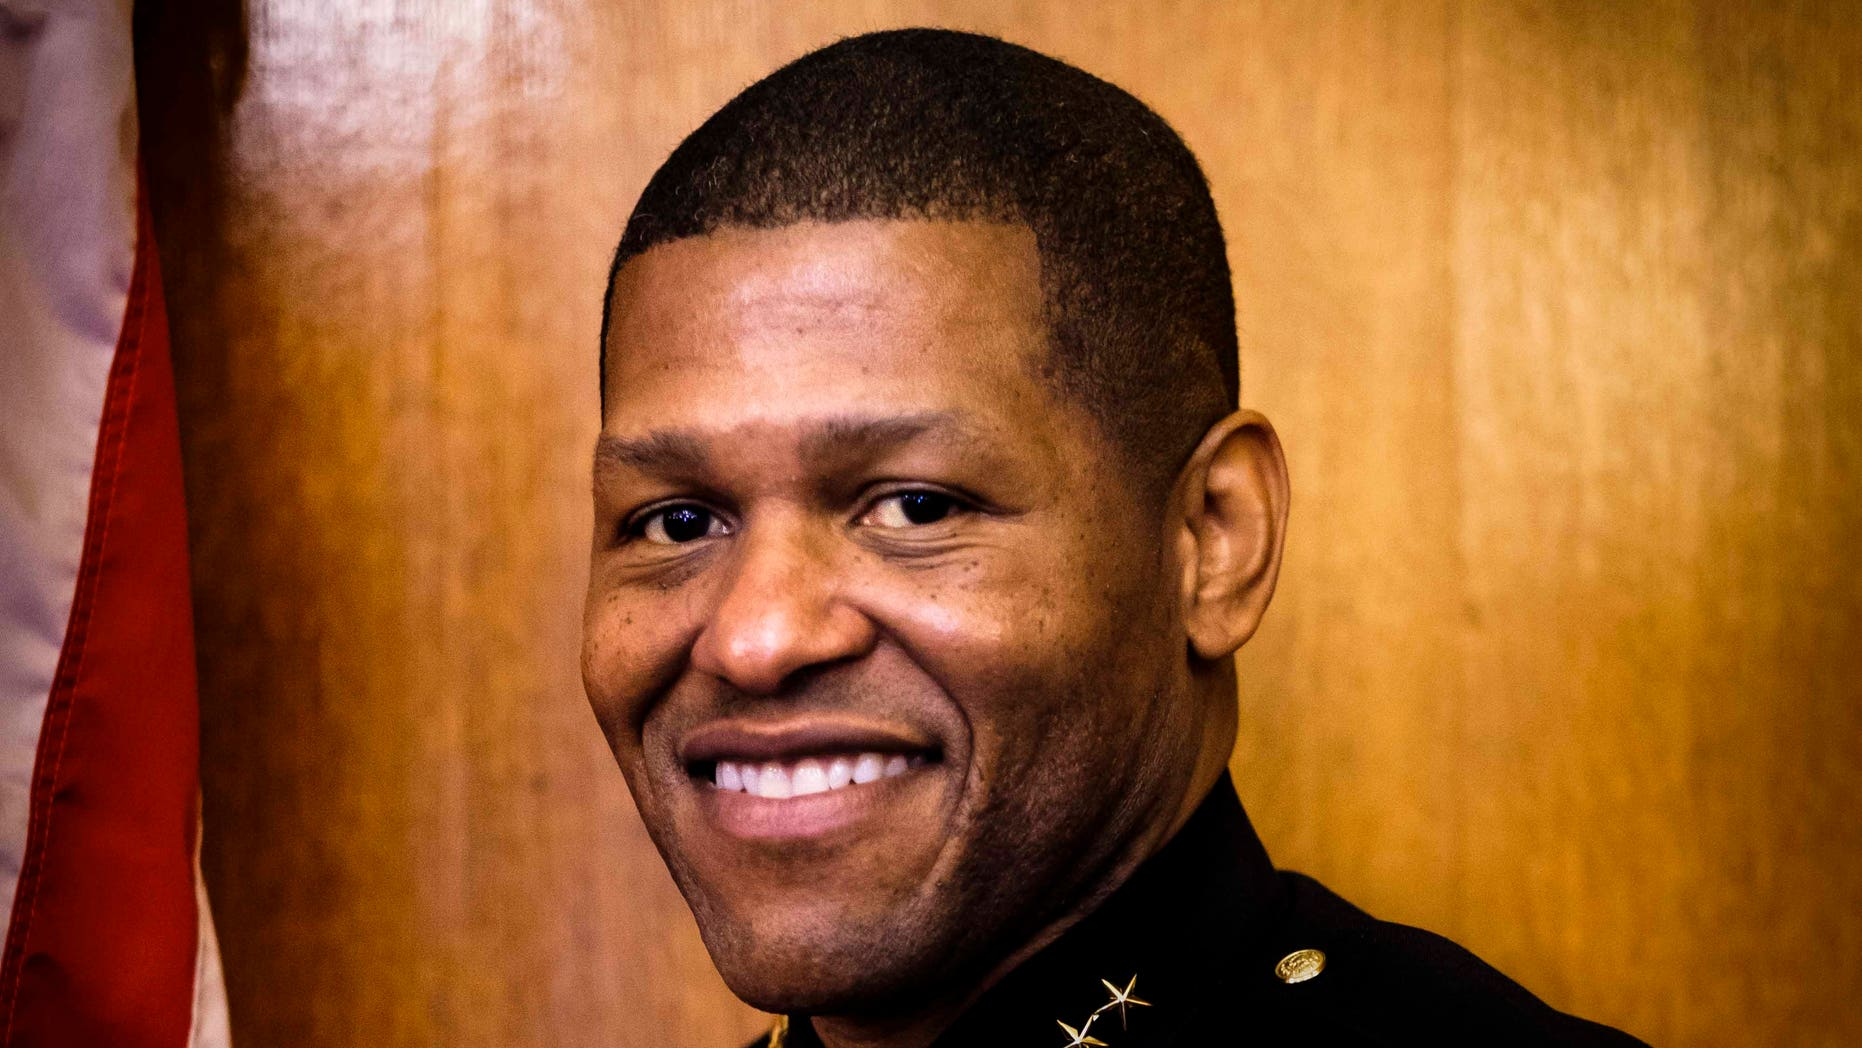 Chief William Scott has been leading San Francisco's force since January 2017, after serving 27 years in the Los Angeles Police Department, according to his official San Francisco Police Department biography. (SFPD)